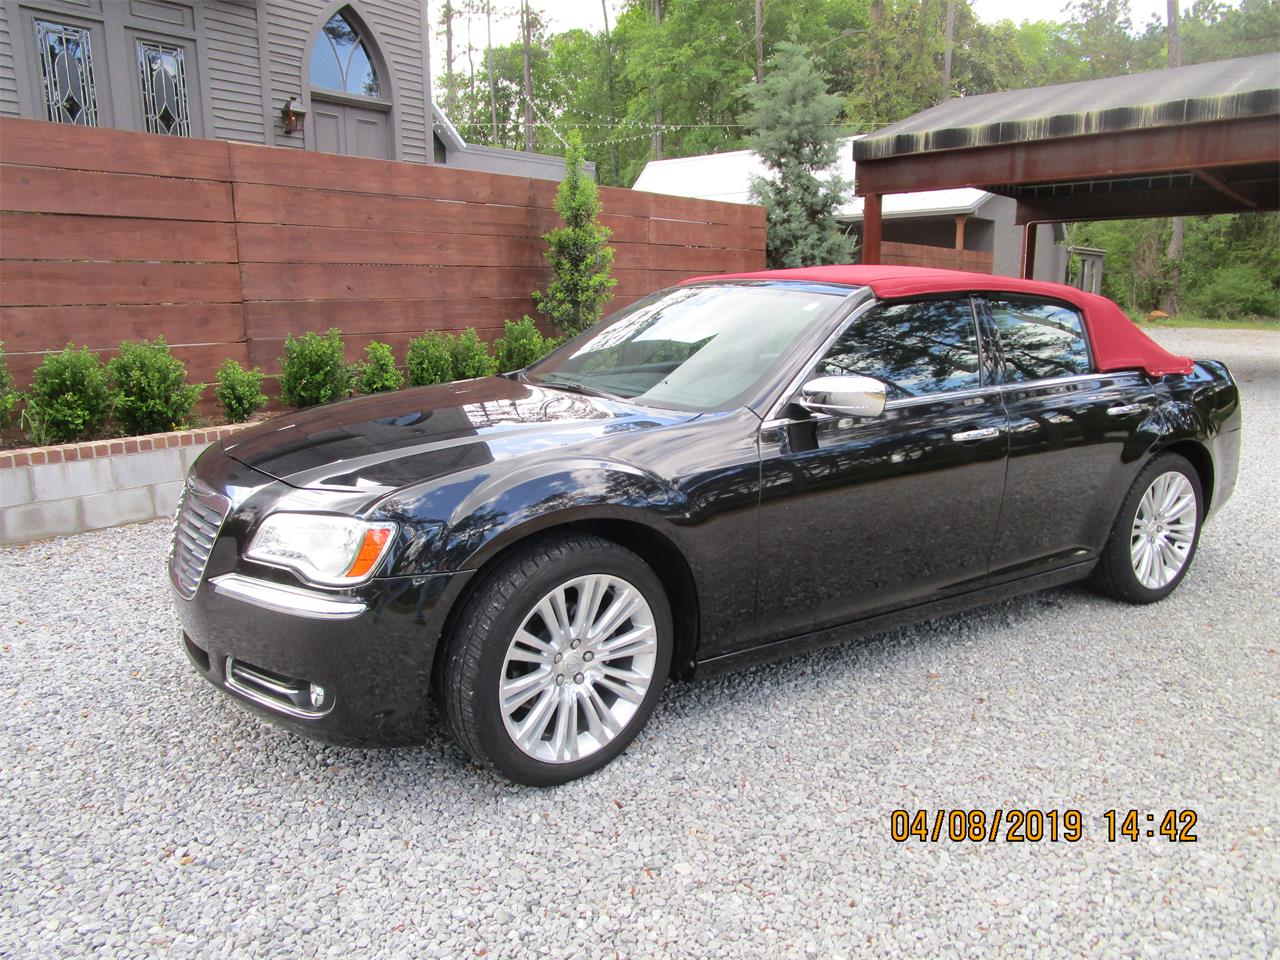 2011 Chrysler 300 for sale in Summit, MS – photo 12